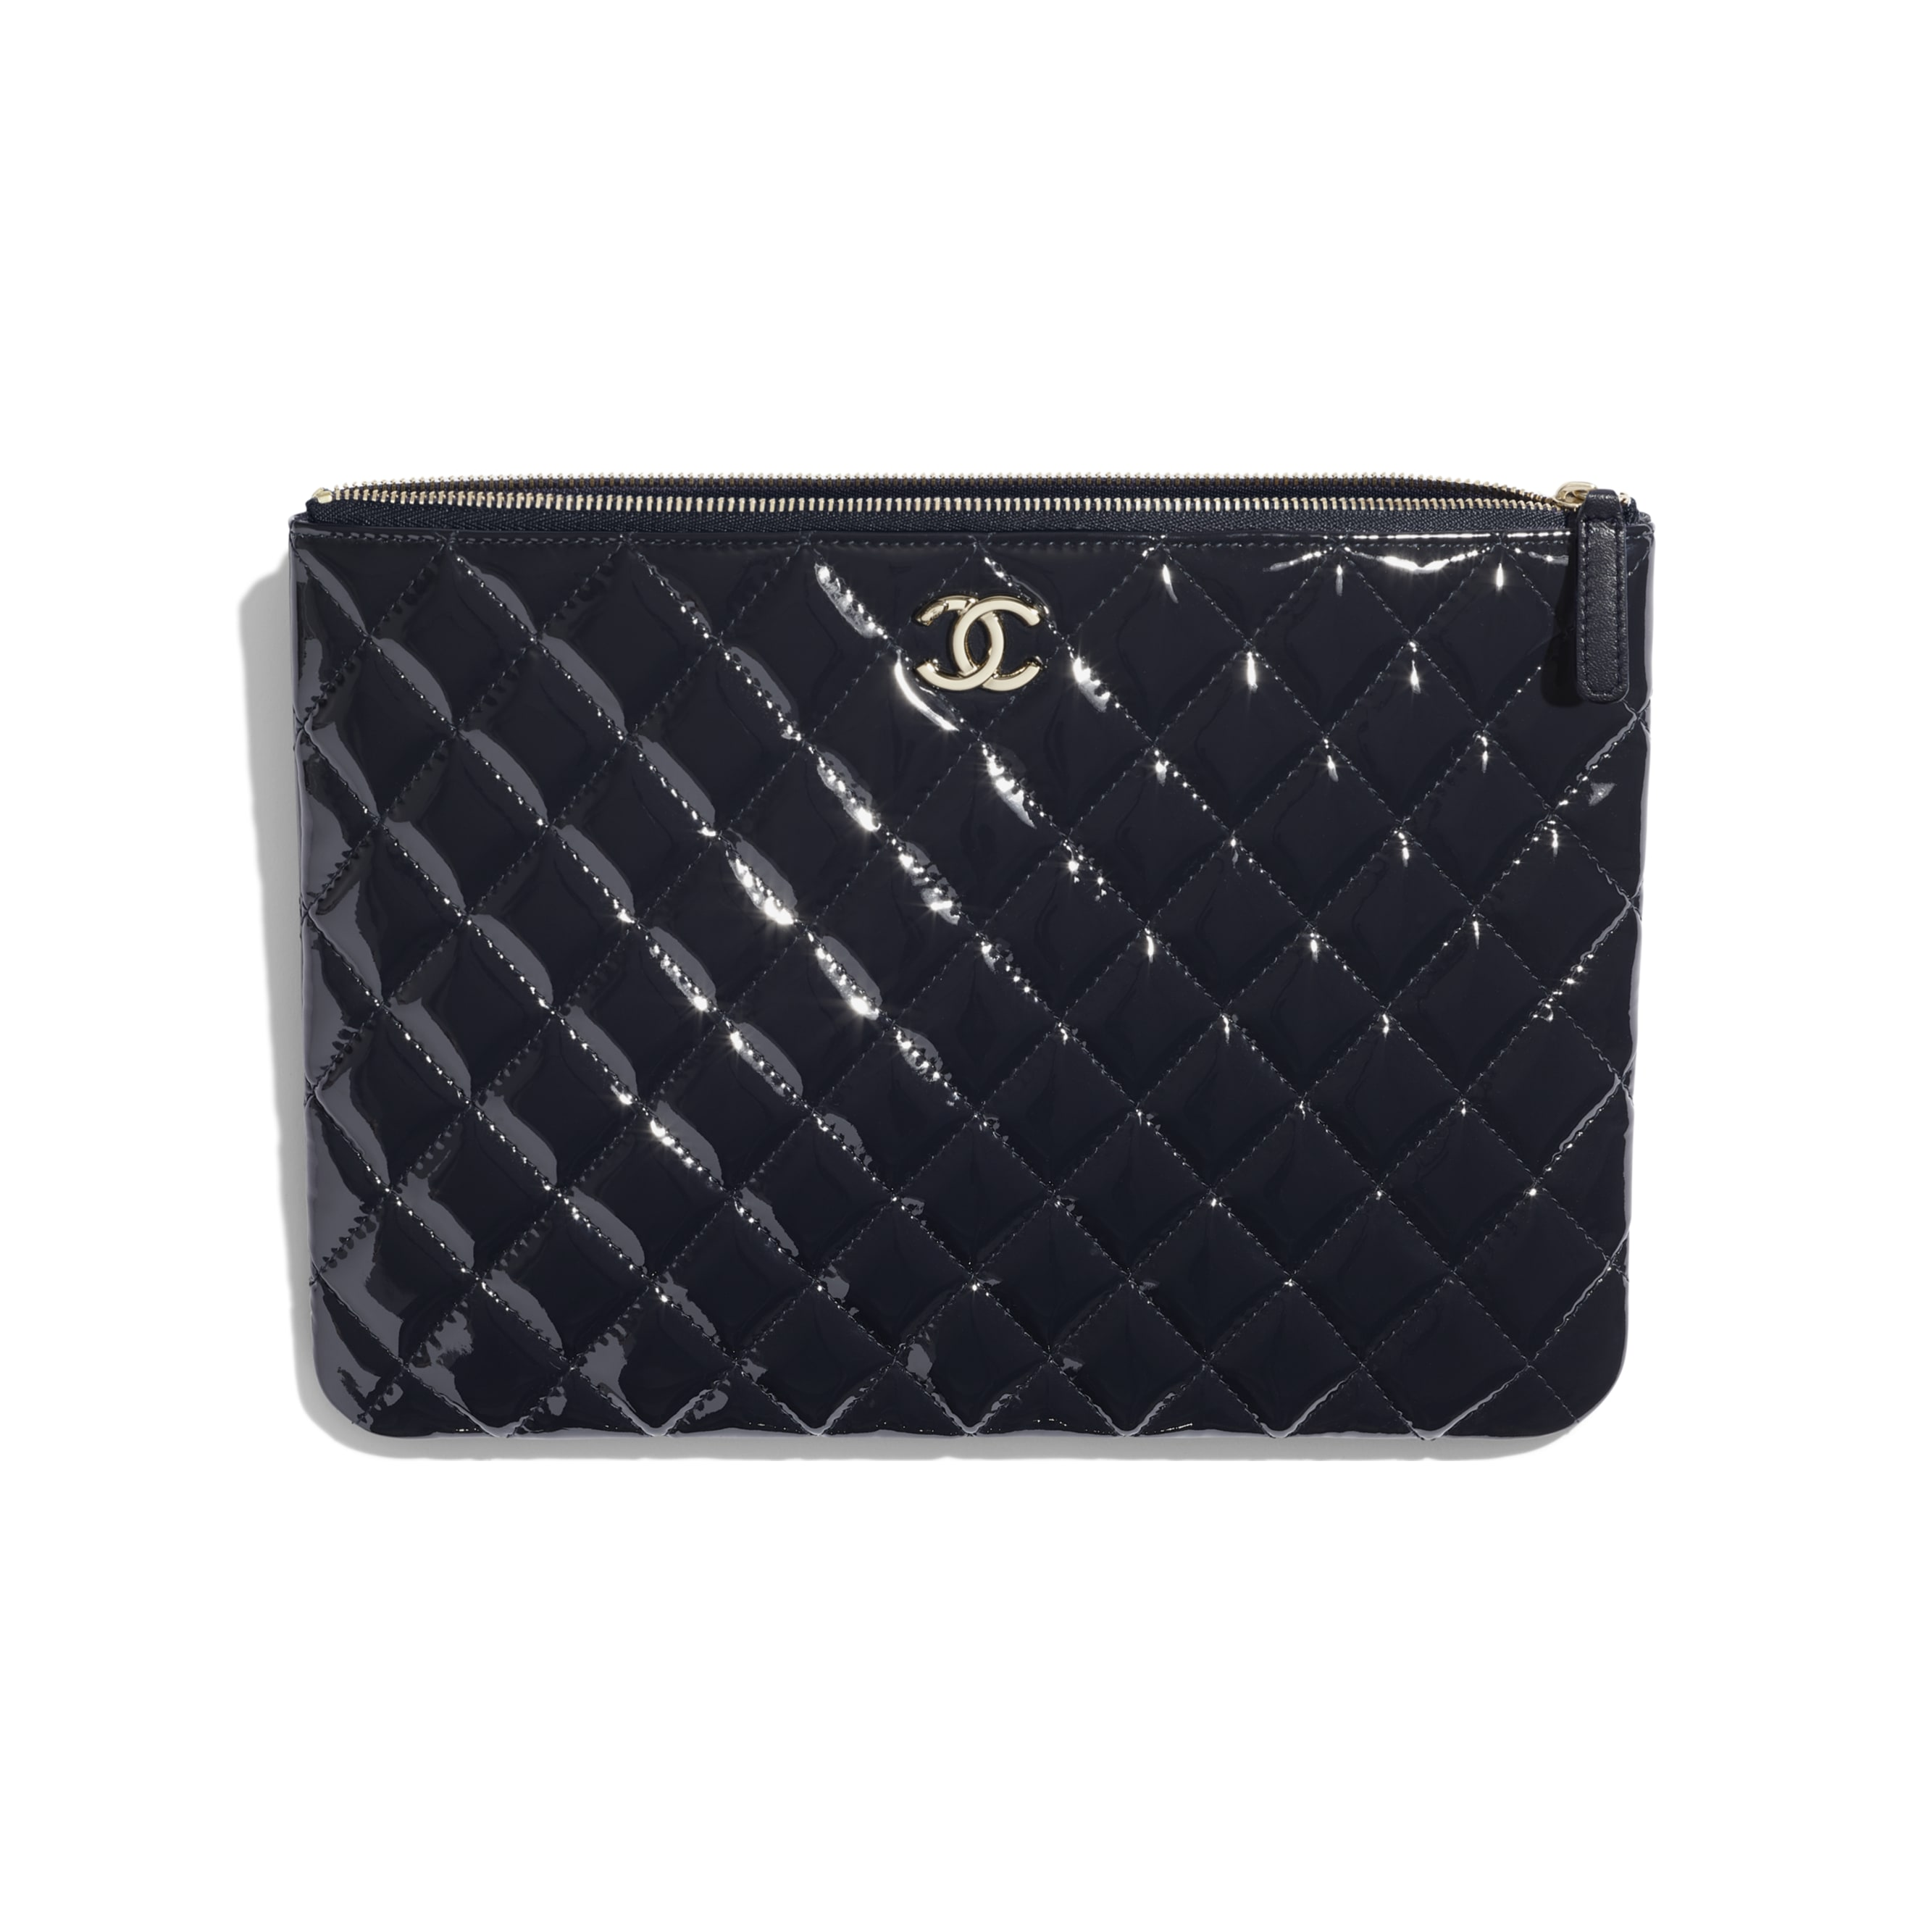 Pouch - Navy Blue - Patent Calfskin, Lambskin & Gold-Tone Metal - CHANEL - Other view - see standard sized version